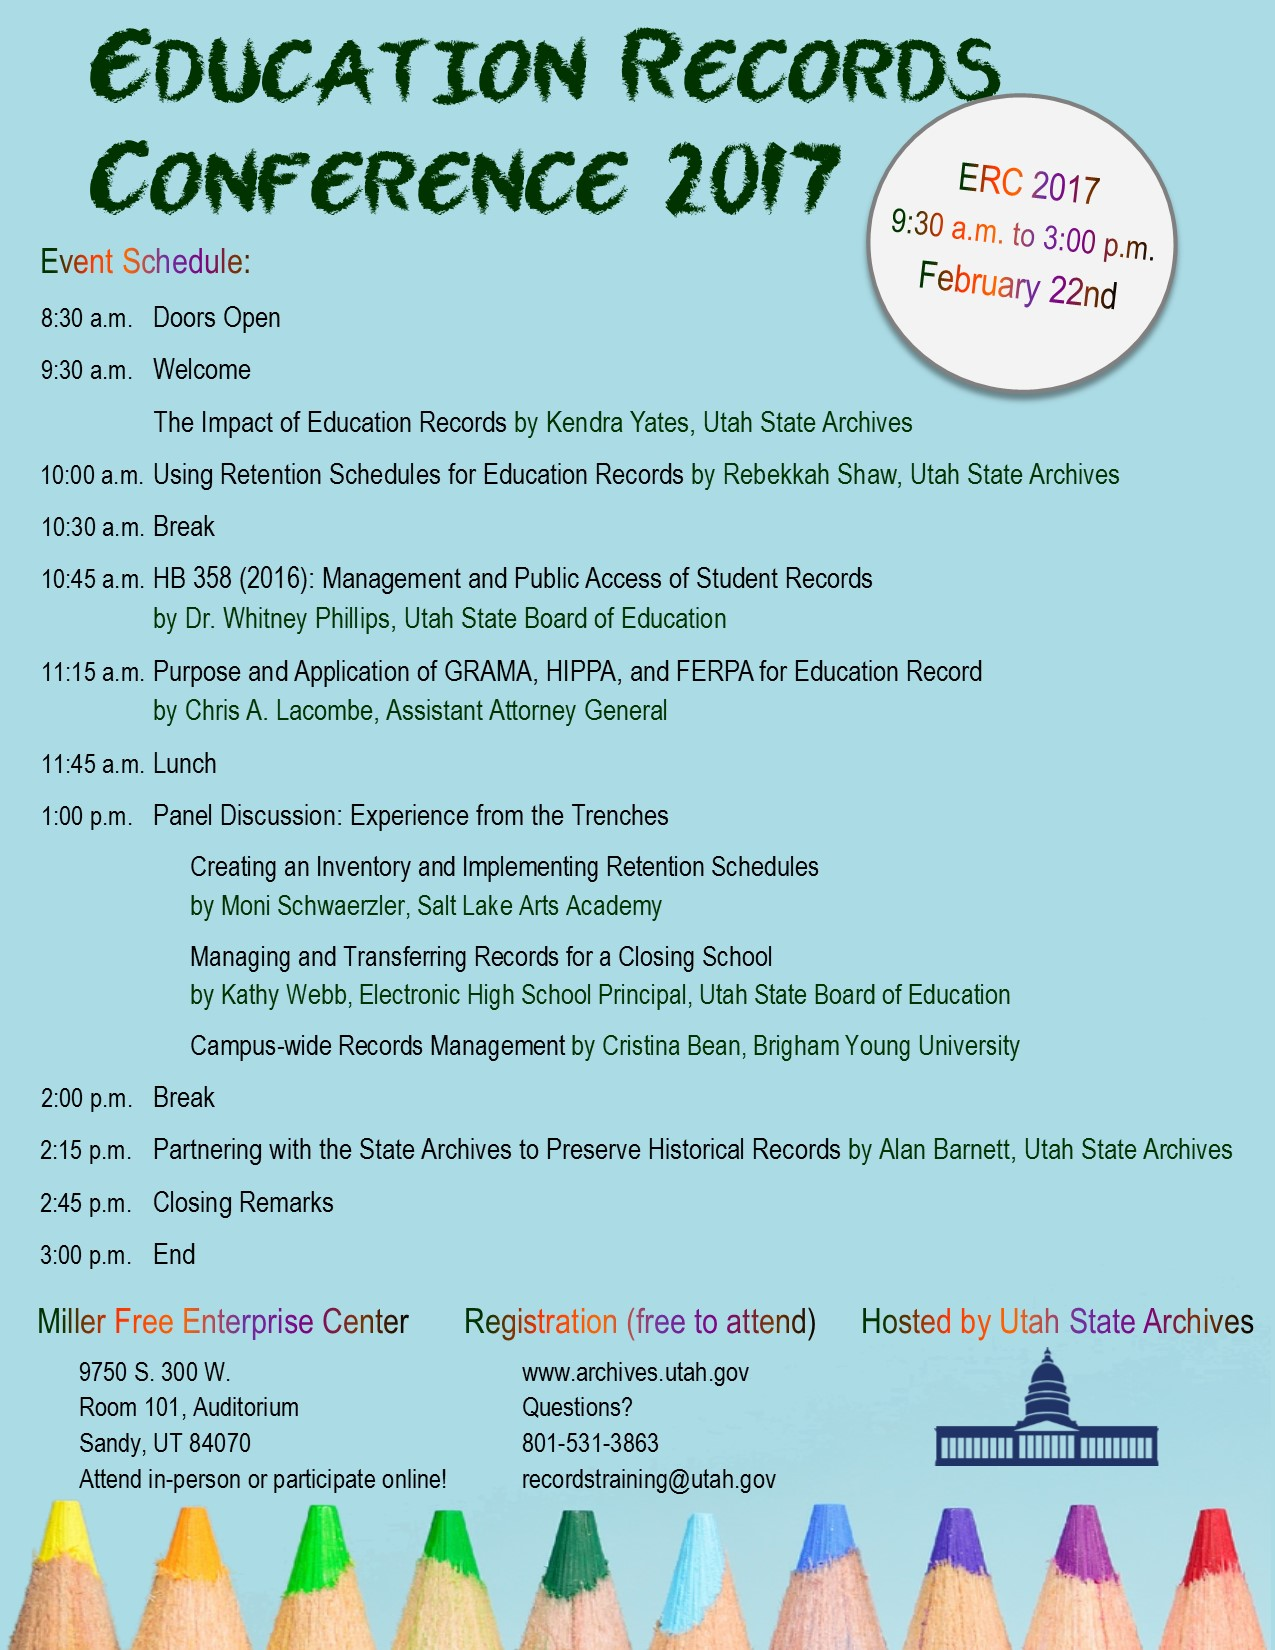 2flyer_times_educationconference2017